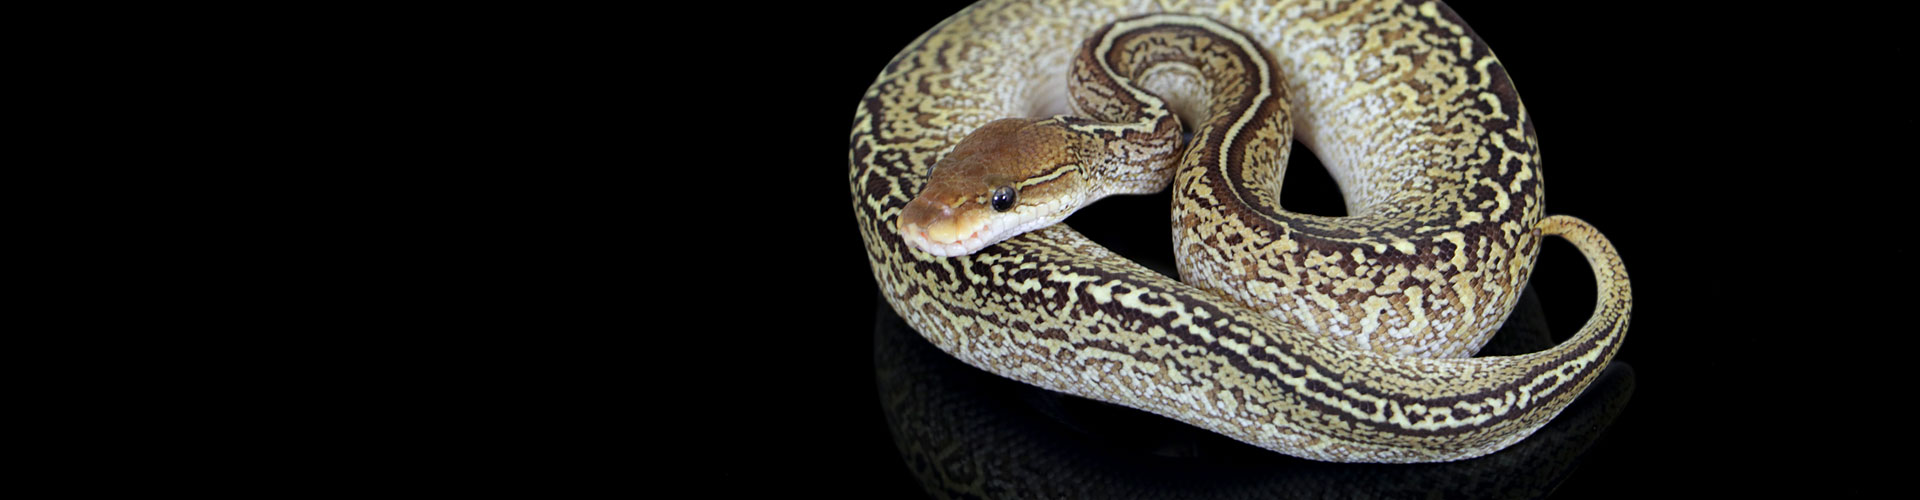 Available Ball pythons  Here you can find our Ball python